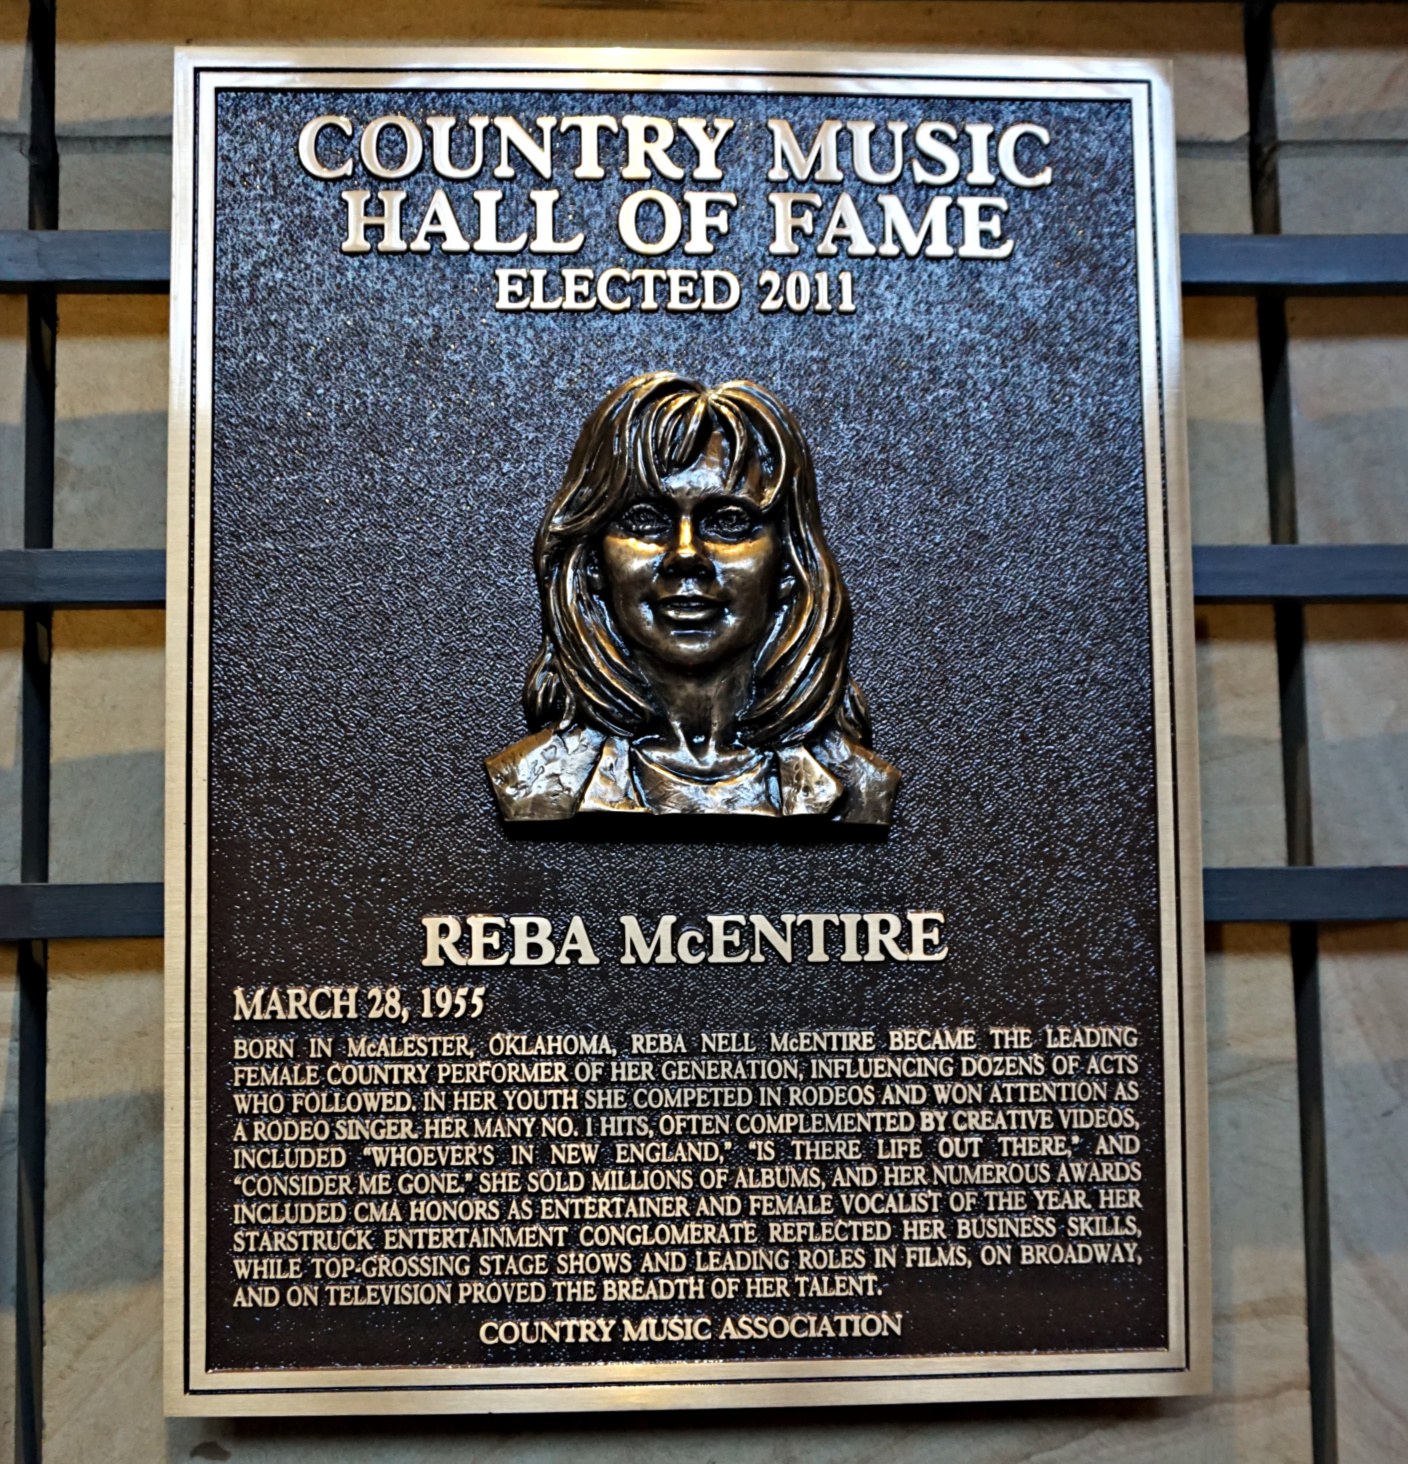 Reba McEntire plate at Country Music Hall of Fame.